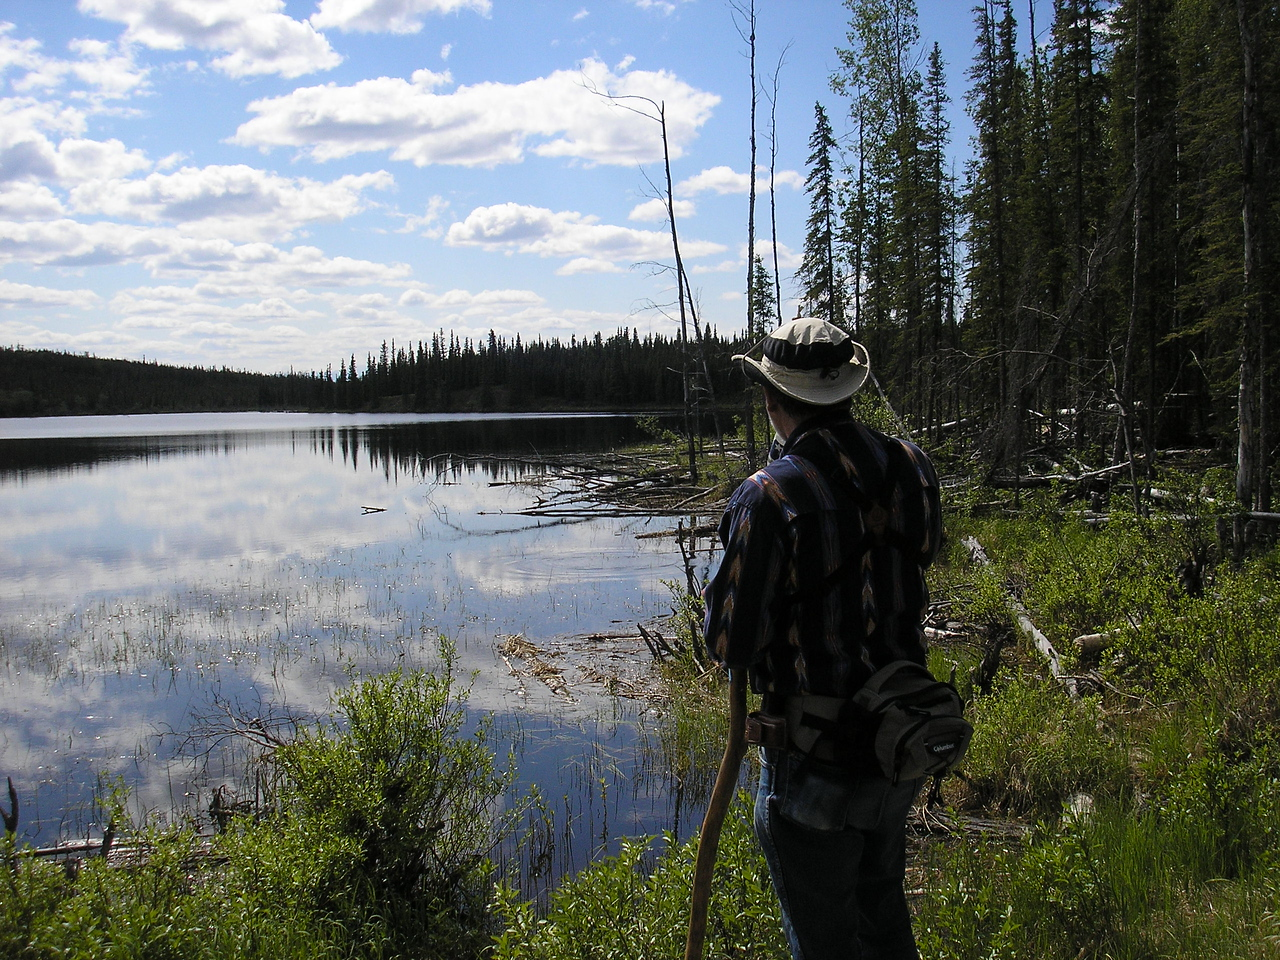 This is Deadman Lake and the muskeg growth along the shore.Muskeg is a bog of sorts, the plants grow very dense and make a spongy soil that is wet all summer.